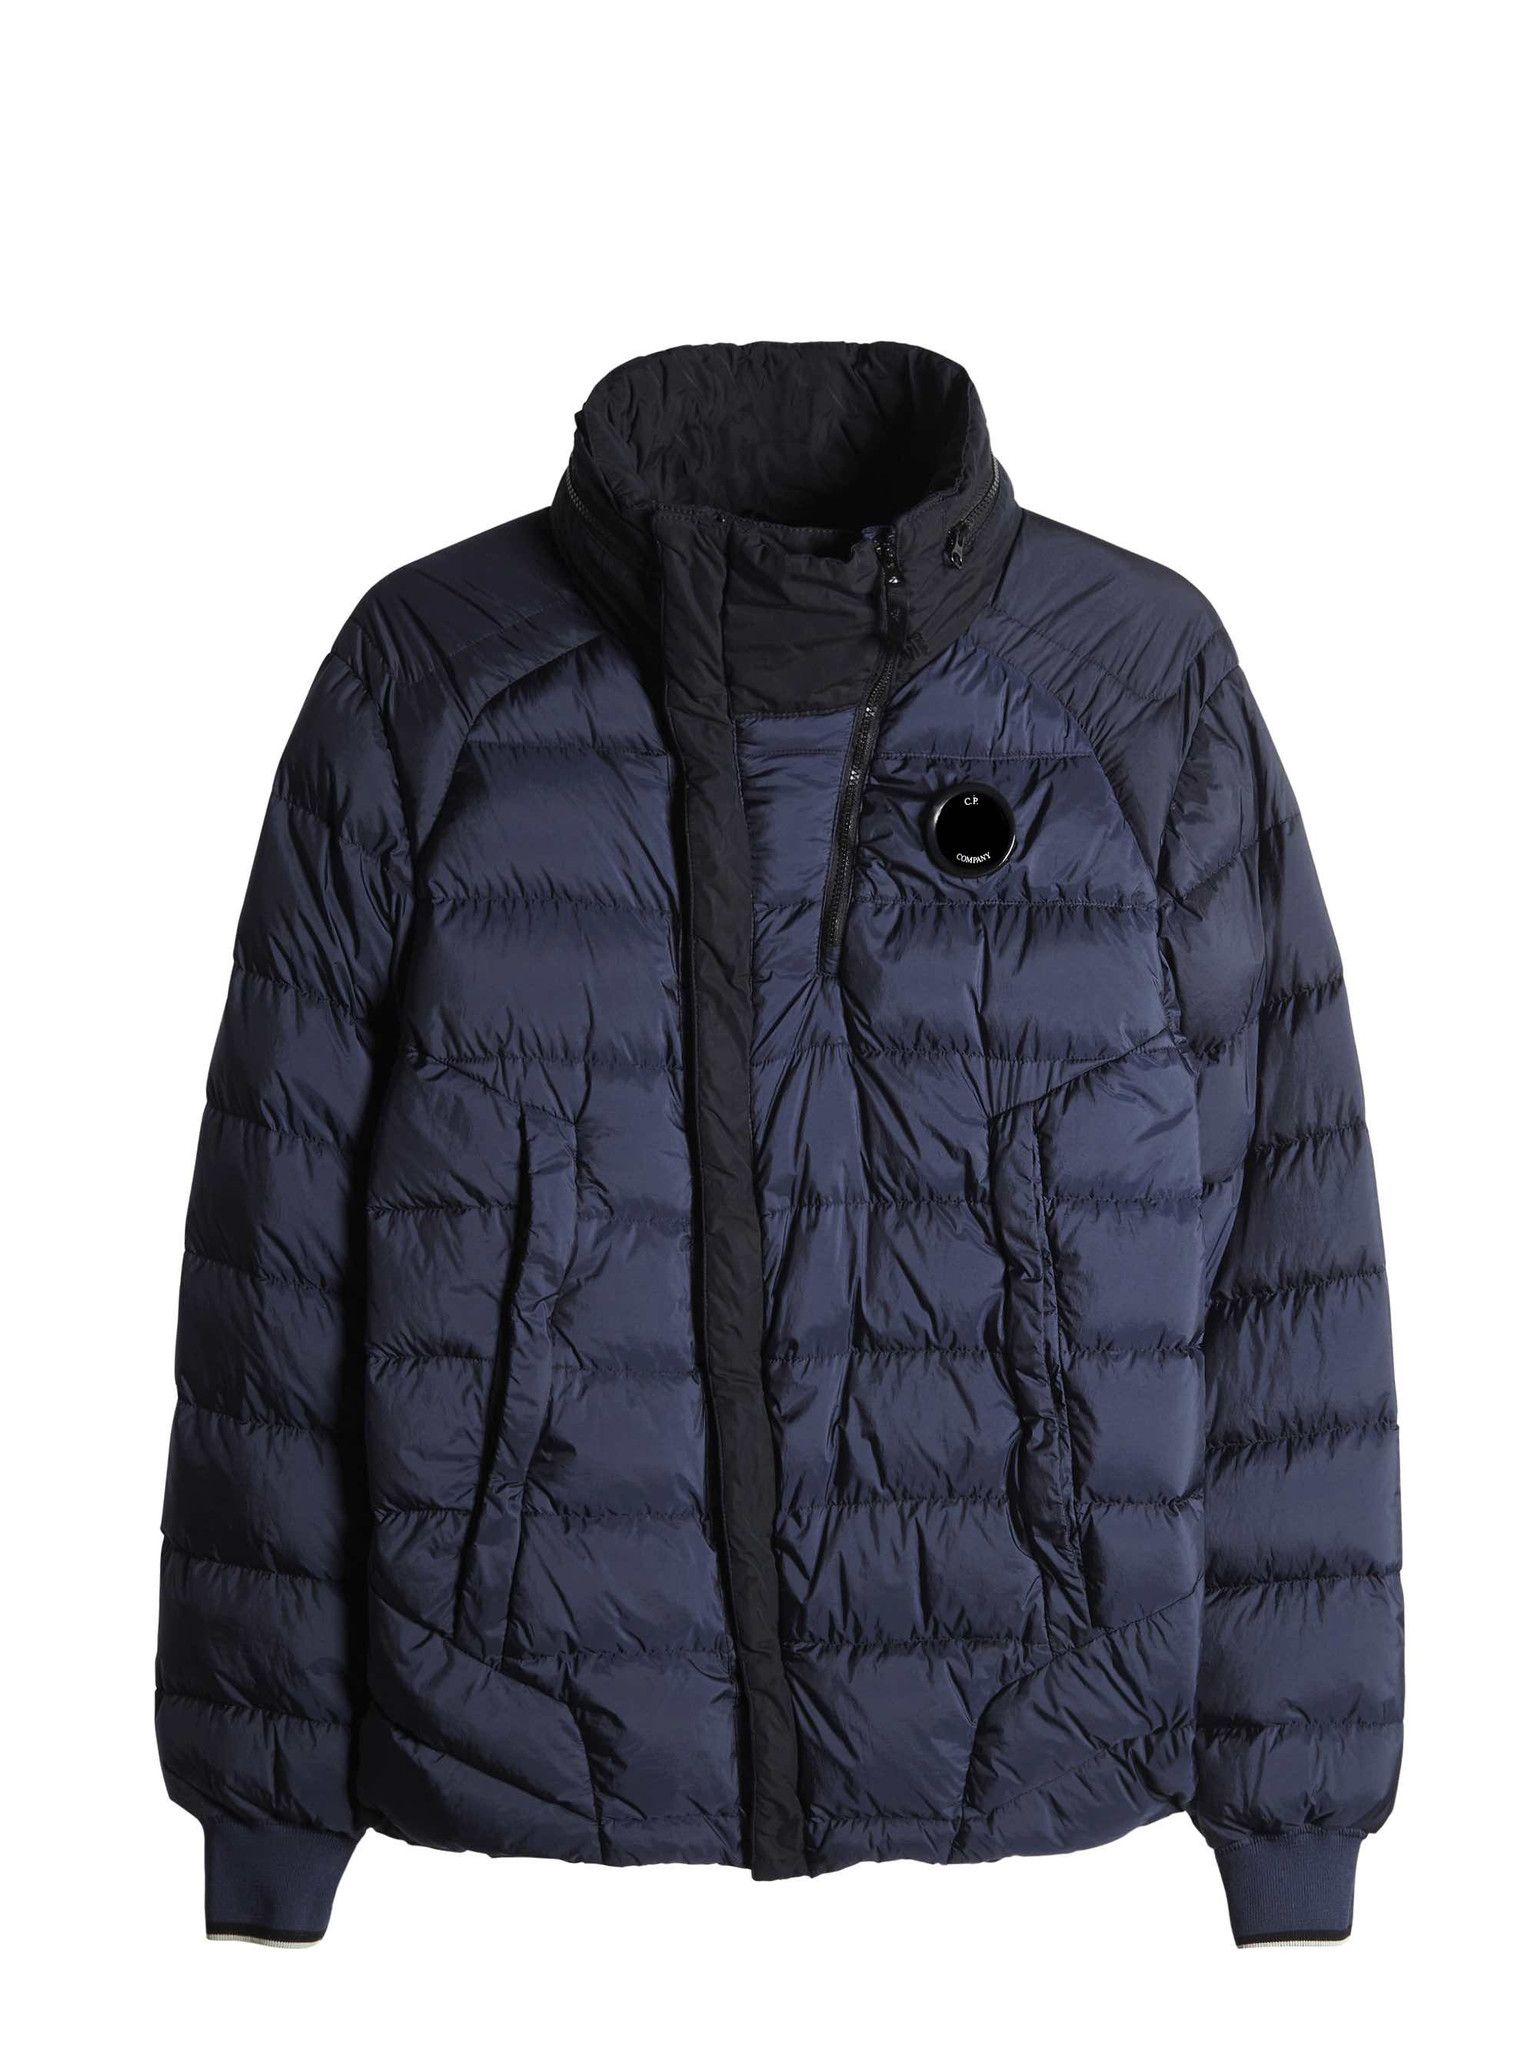 C.P. Company DD SHELL HOODED DOWN JACKET with lens in Navy